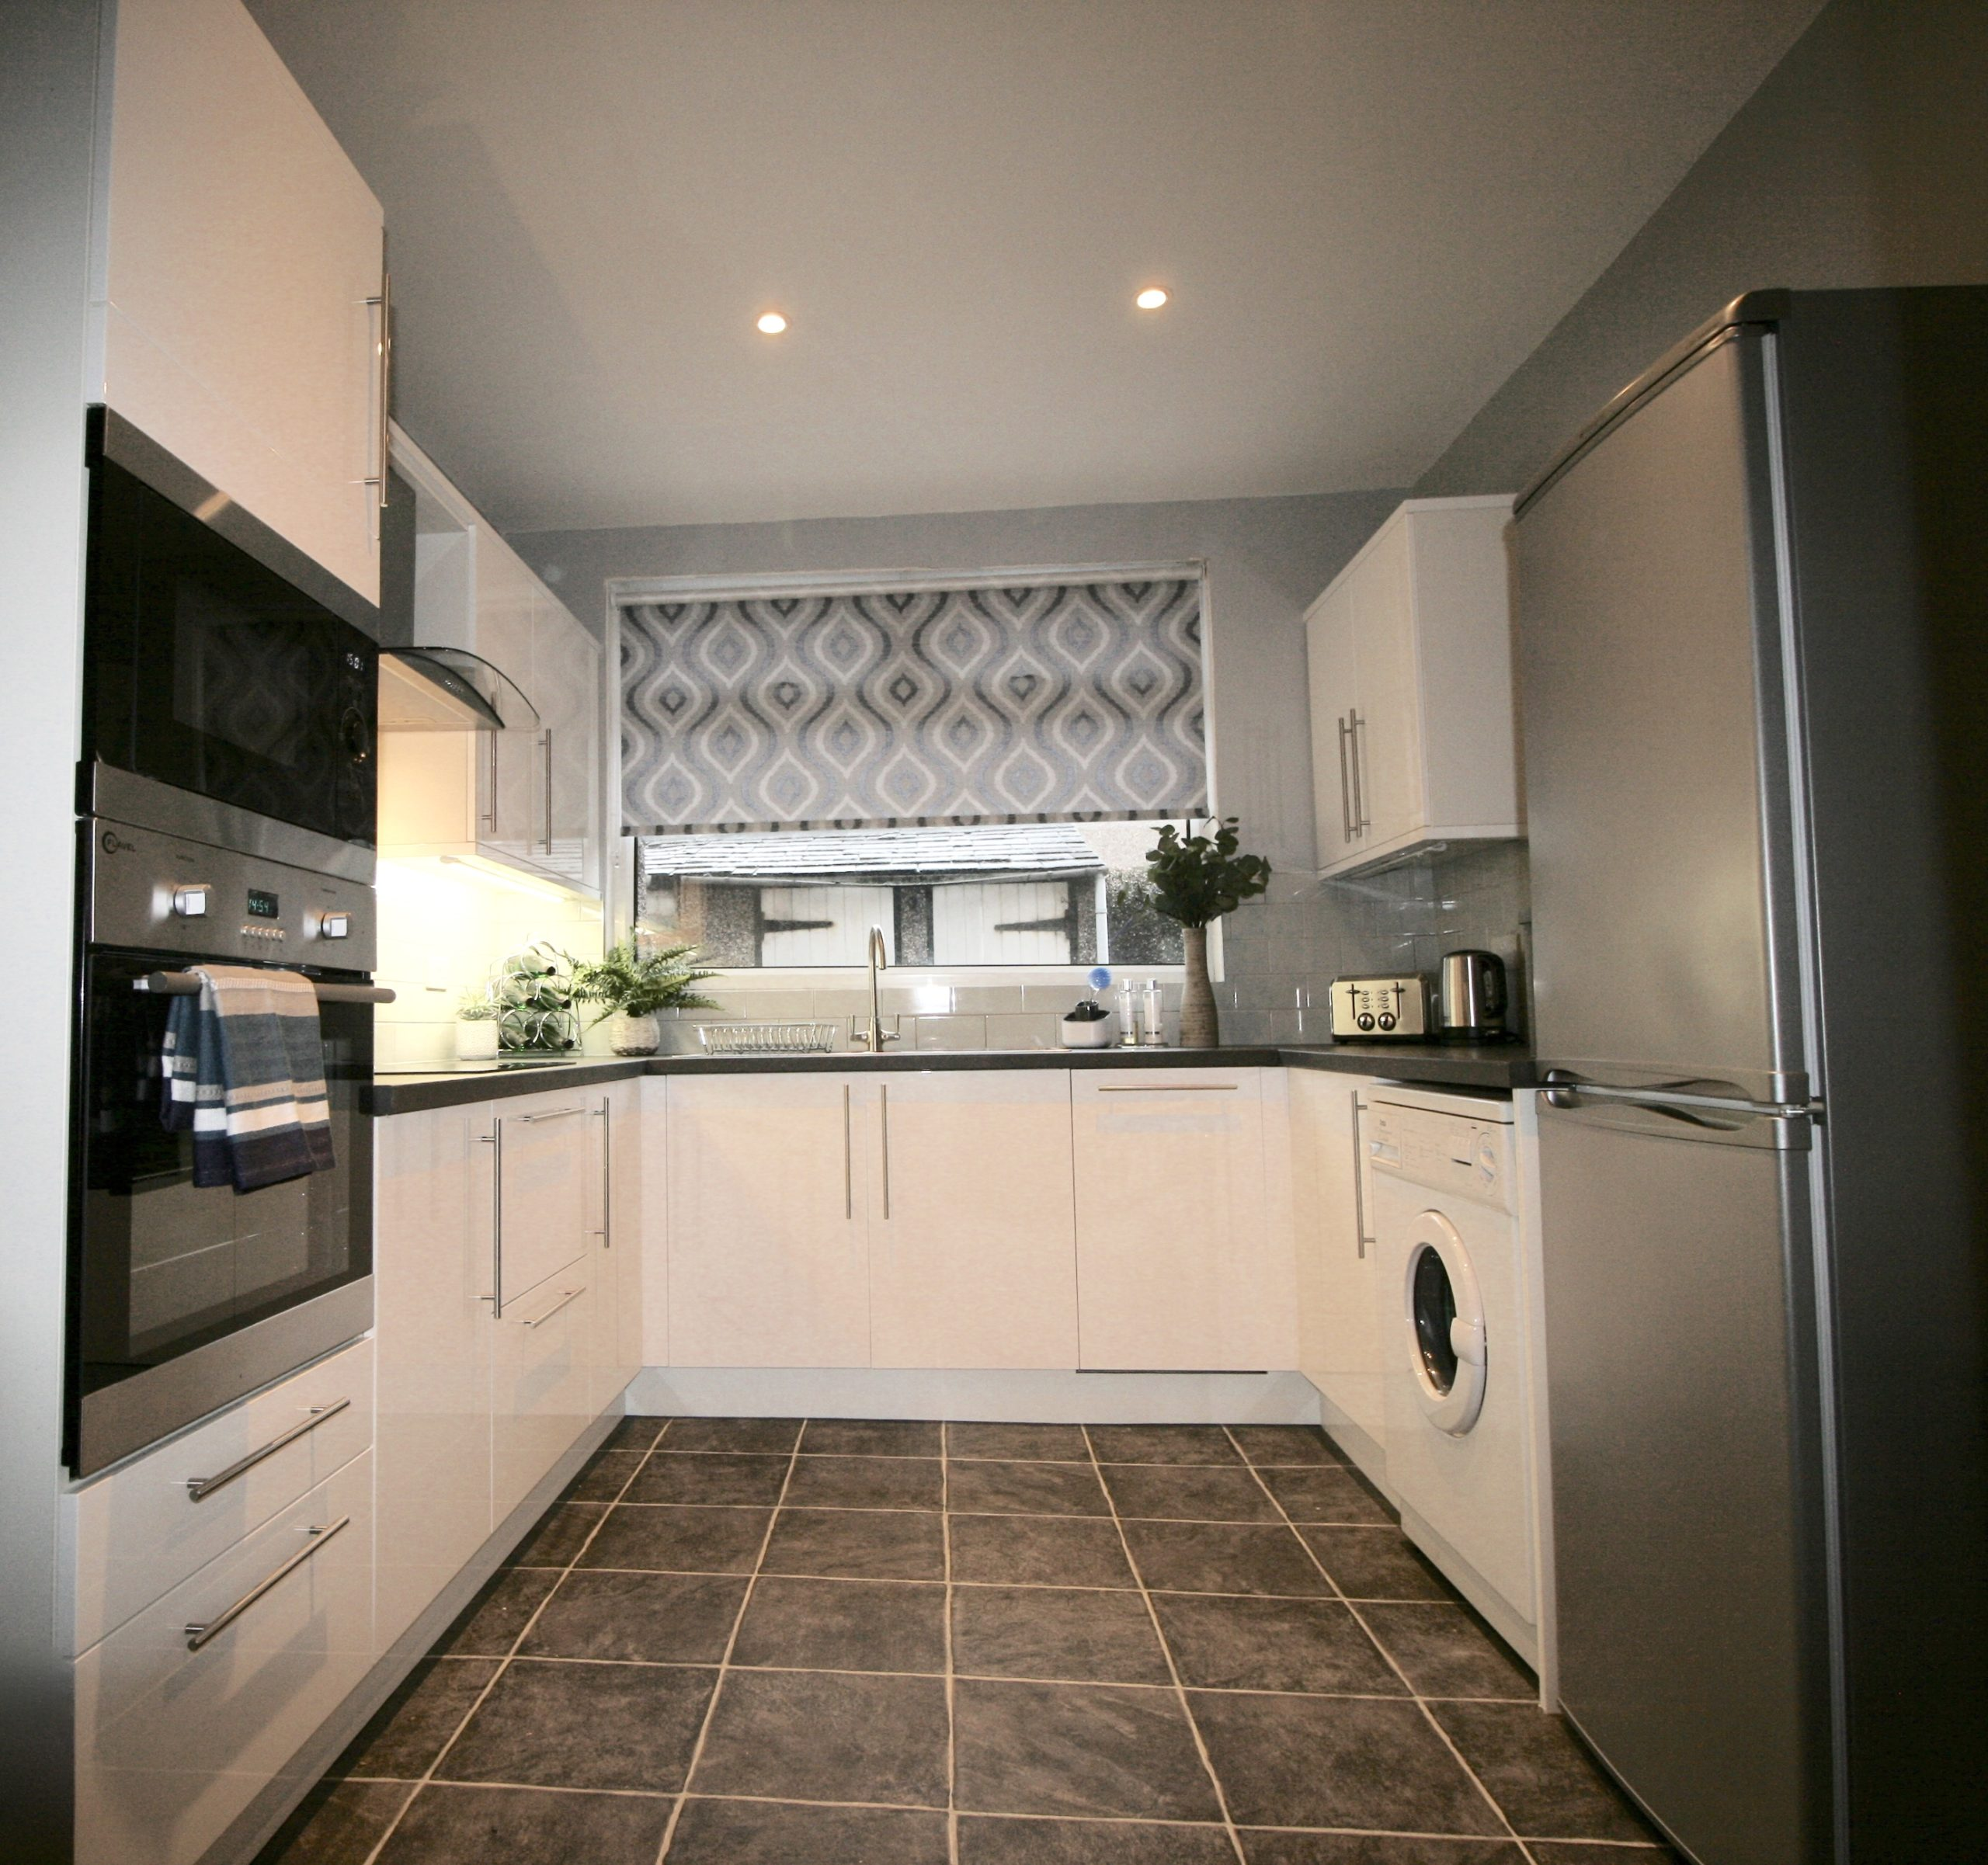 Kitchen Transformation - Affordable contemporary white gloss porter kitchen by PWS fitted by Cockermouth Kitchen Co and designed by Amelia Wilson Interiors Ltd